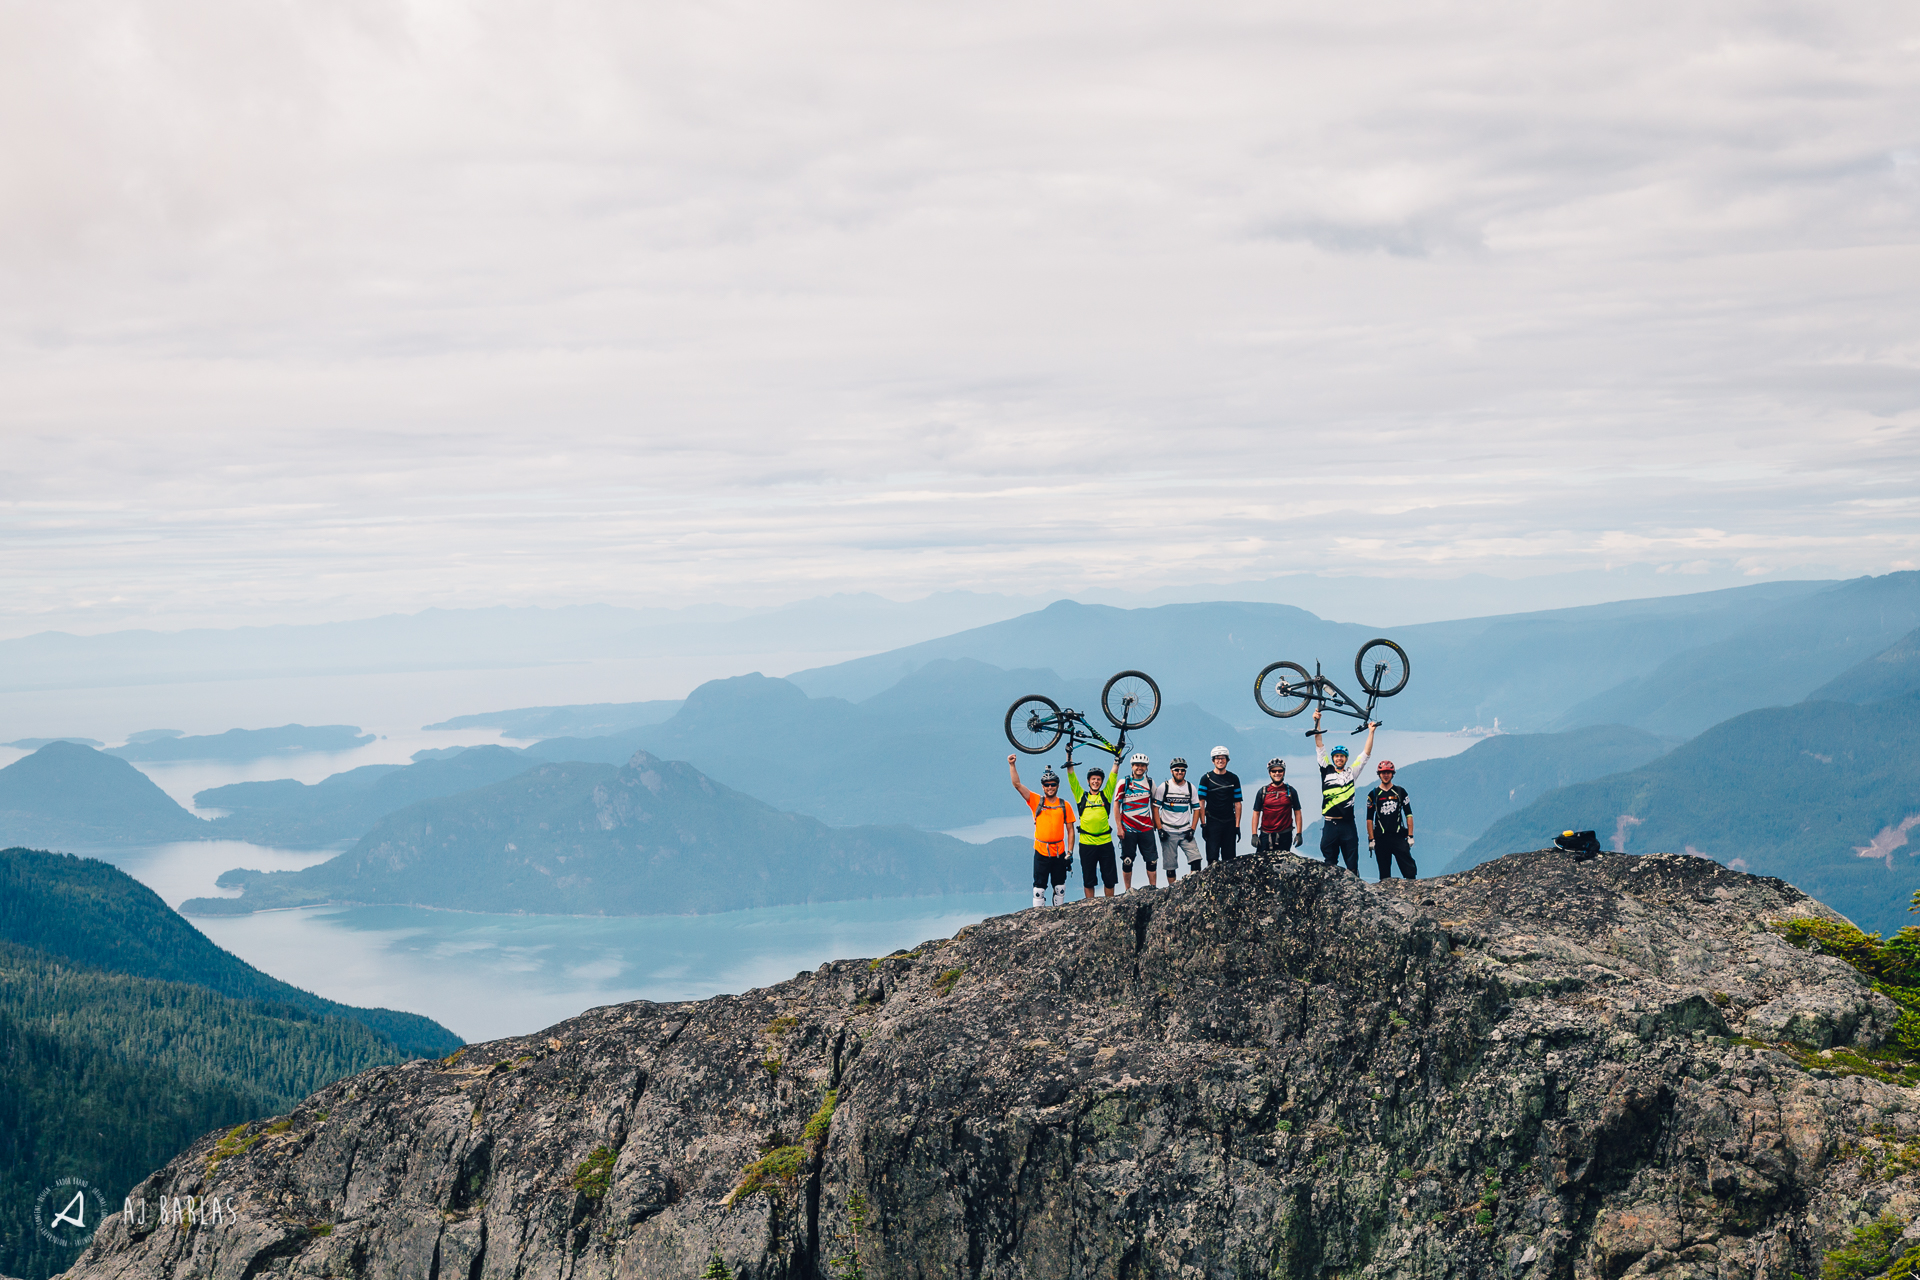 The Stag party stoked above the Howe Sound